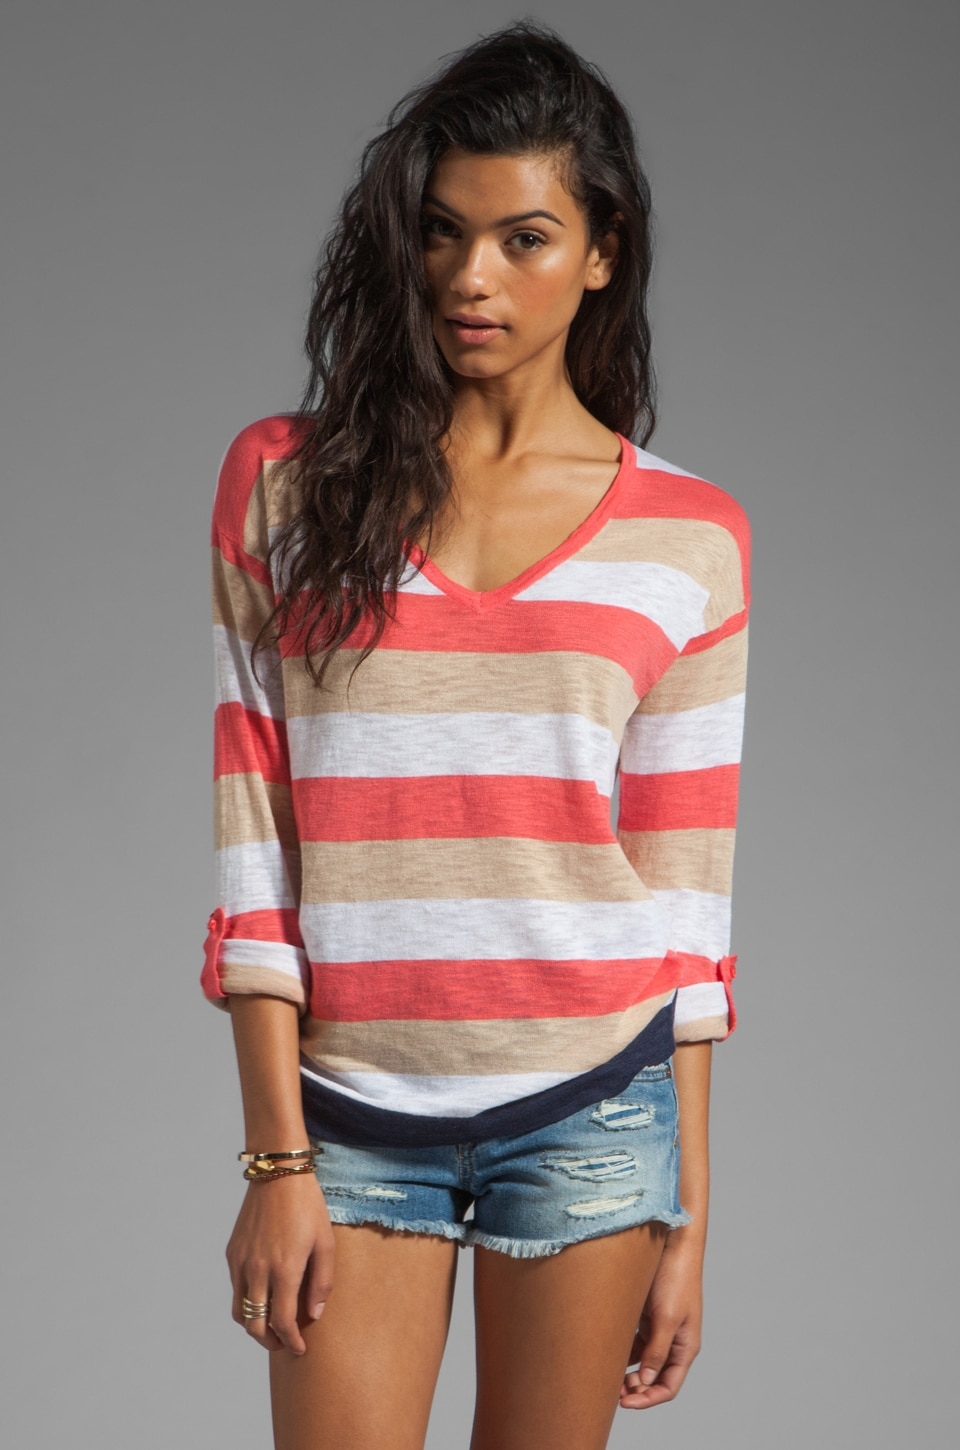 C&C California V-Neck Sweater in Gumball Pink